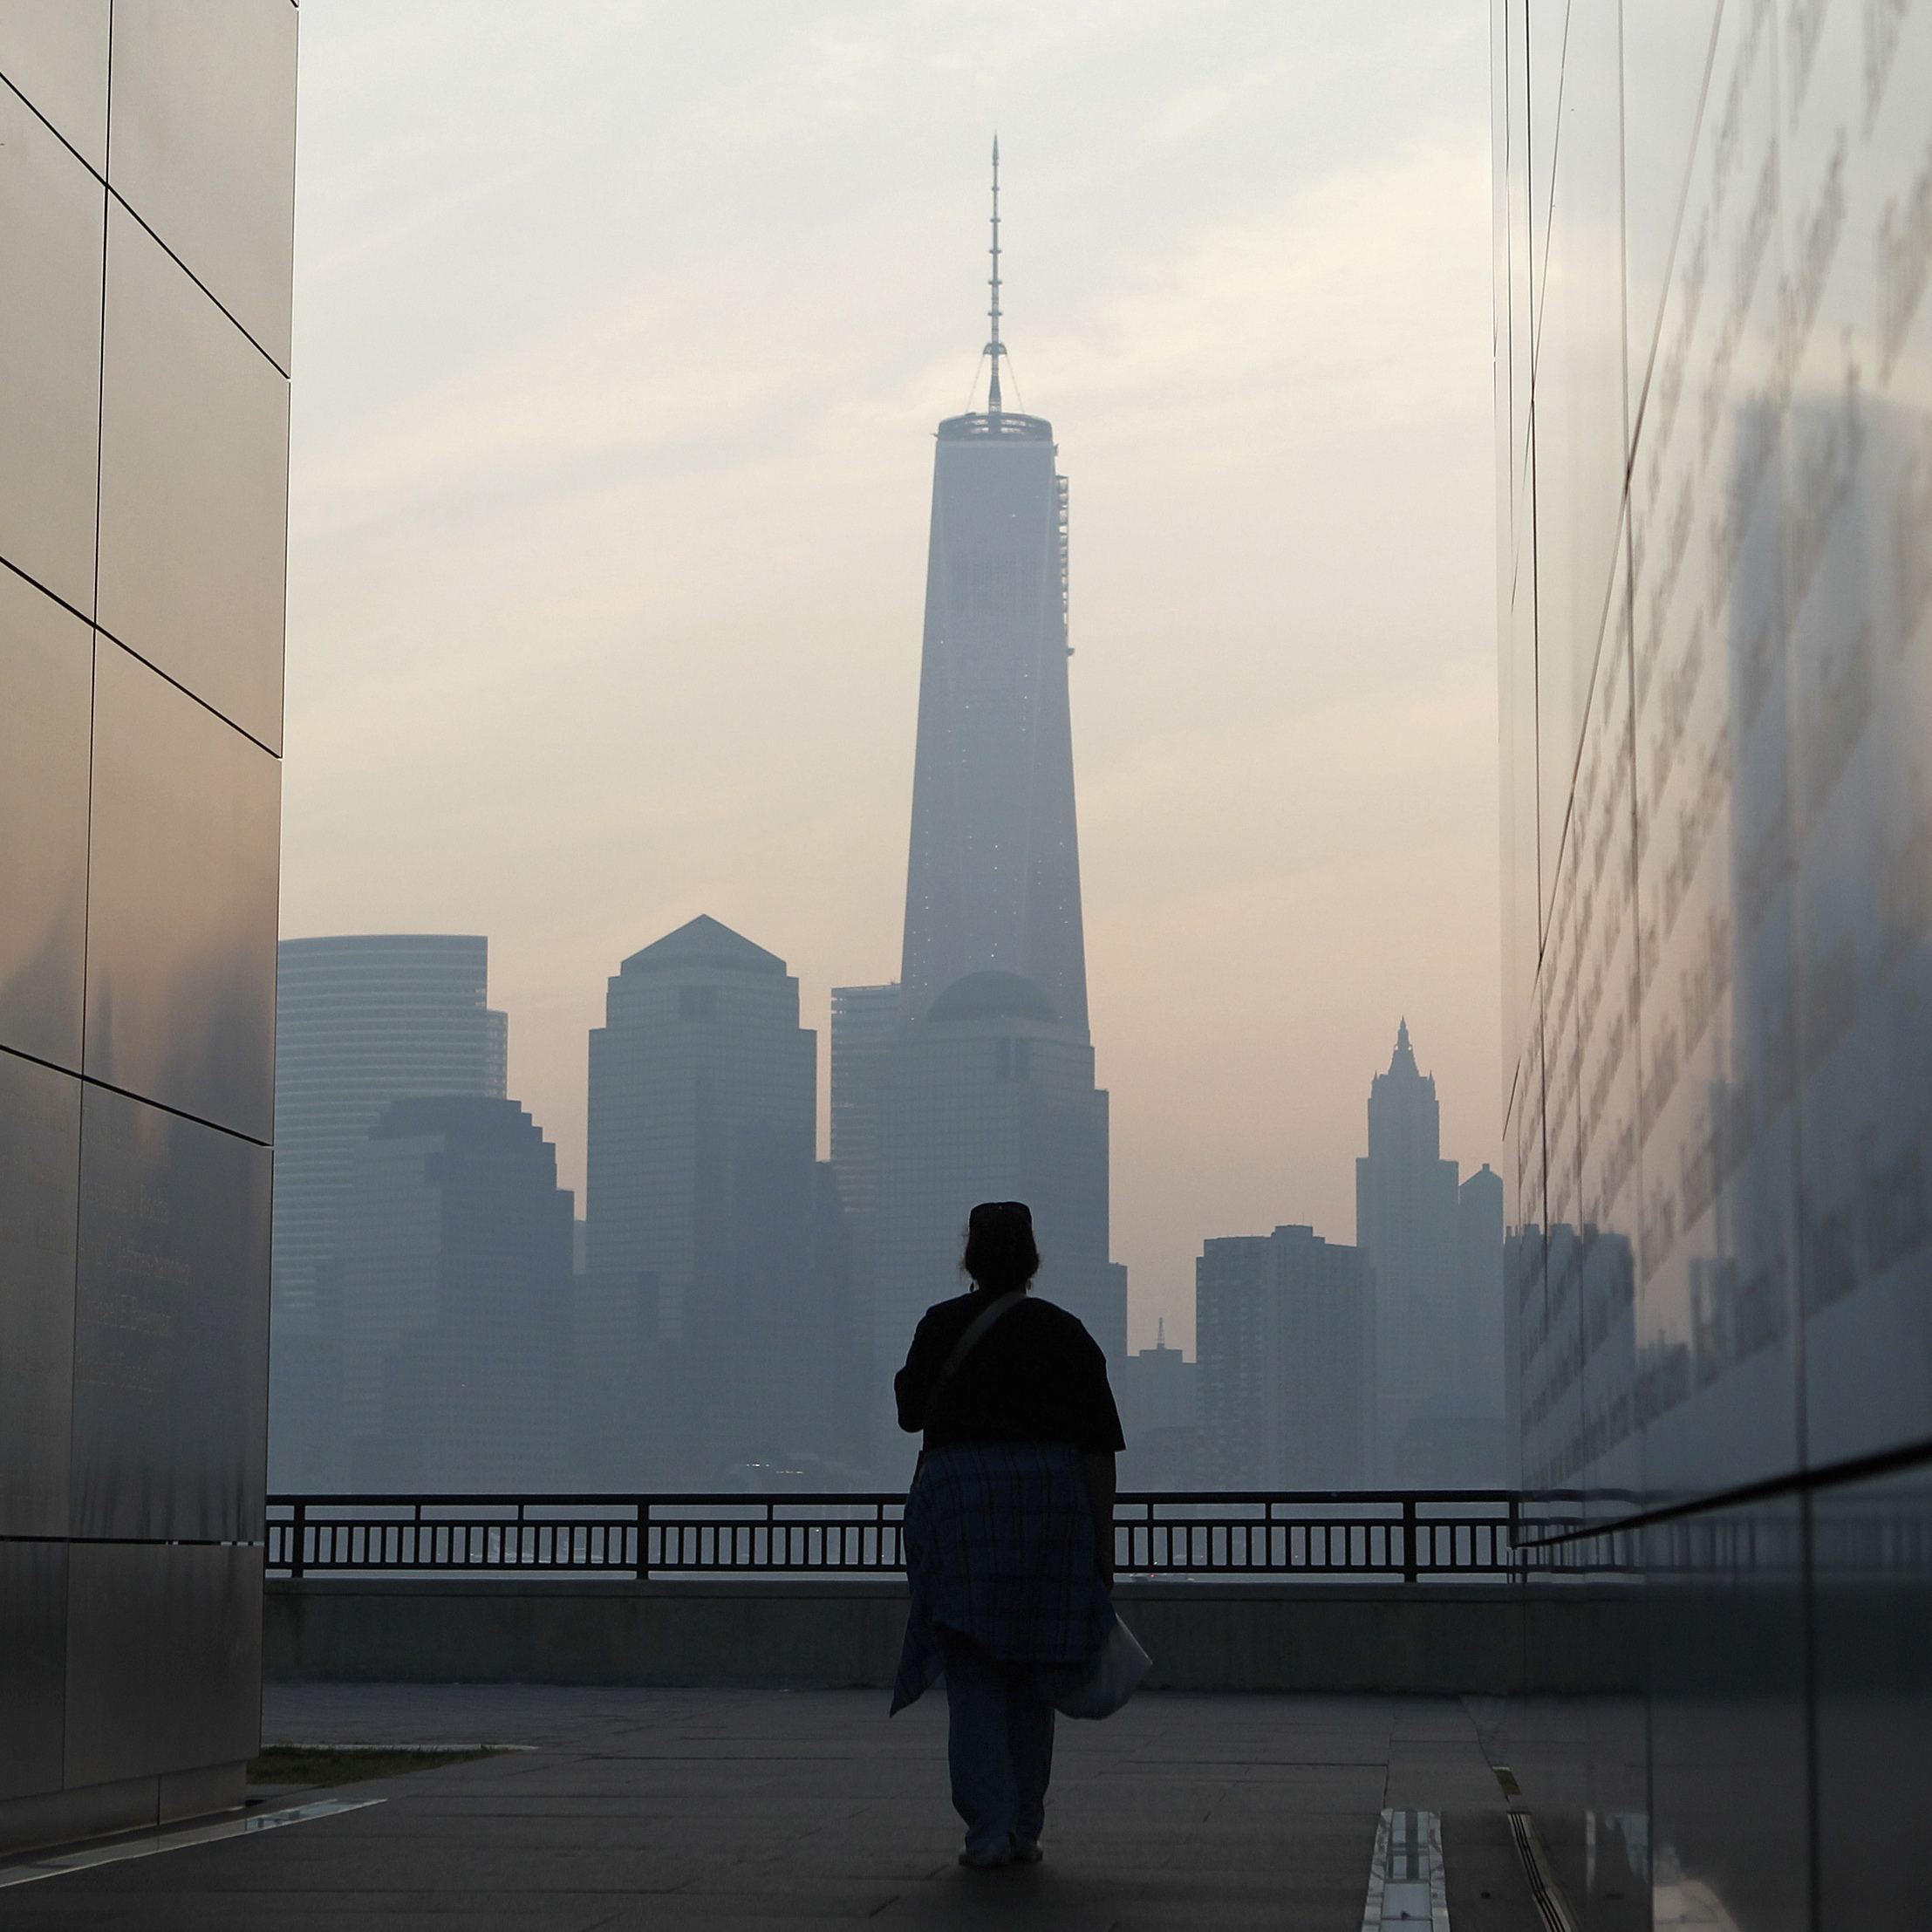 A woman looks out at One World Trade Center from inside the 9/11 Empty Sky memorial at Liberty State Park in Jersey City, N.J., on Wednesday. Americans commemorated the 12th anniversary of the Sept. 11 attacks with solemn ceremonies and pledges to not forget the nearly 3,000 people killed.